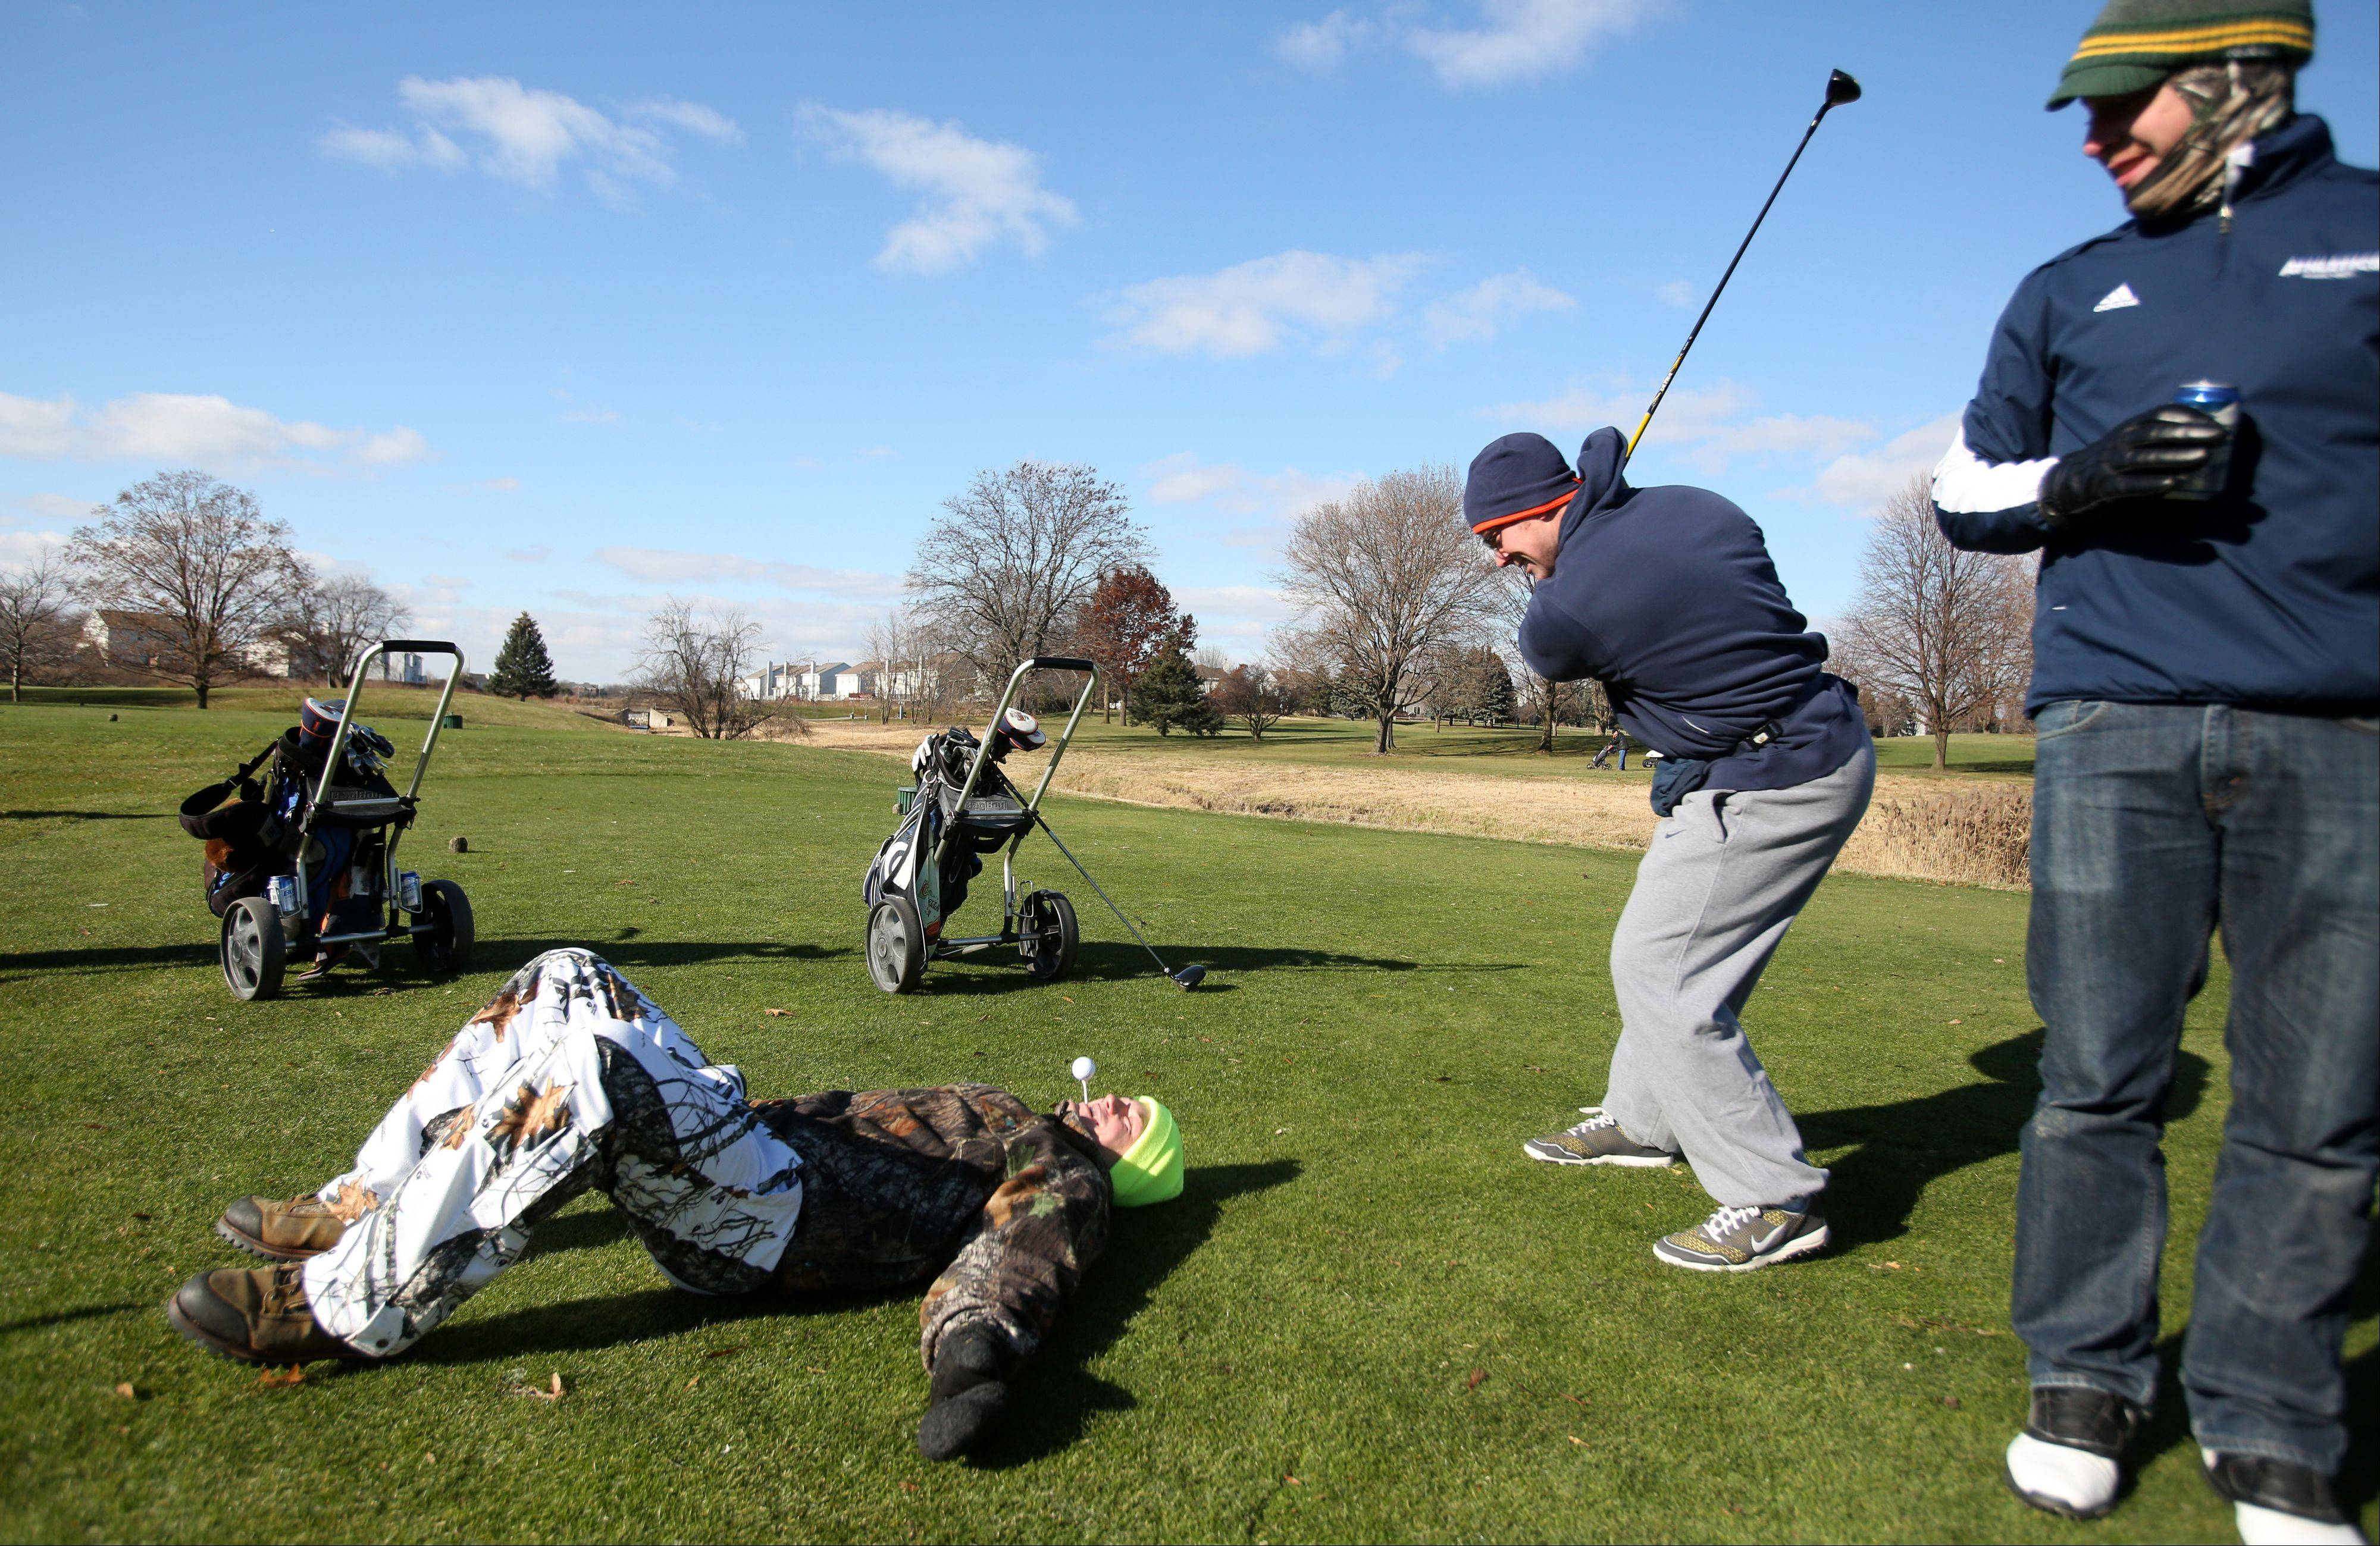 Derek Weber of Joliet lies on the ground as the human tee during the Naperville Park District's Turkey Shoot golf tournament Saturday at Springbrook Golf Course in Naperville. Zach Pedersen of Joliet practices his backswing while Dan Hamburger of Naperville watches.